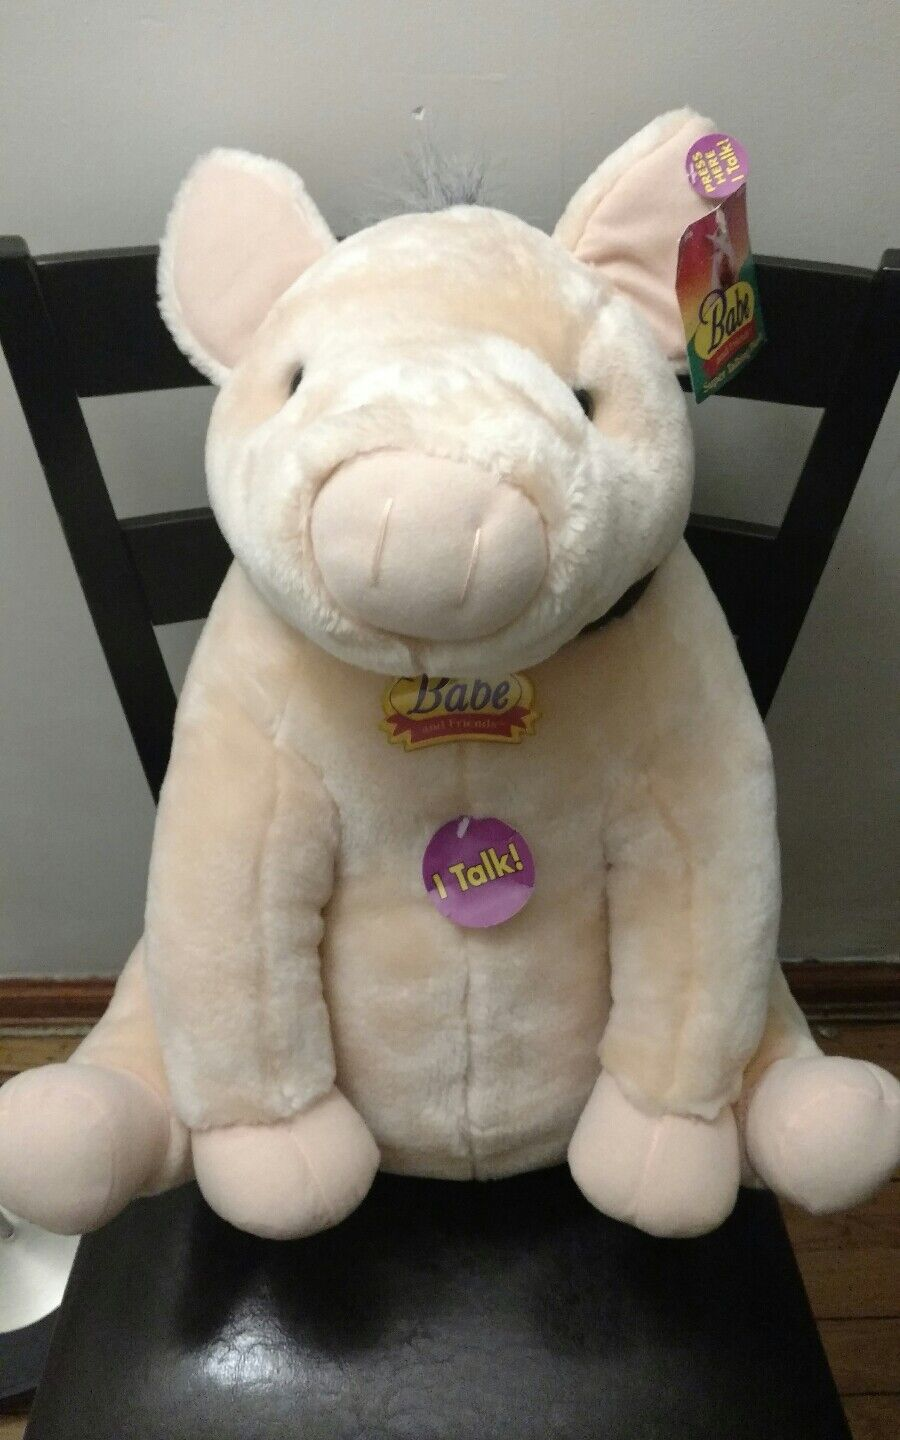 20  Babe and Friends Pigs Talking Talks Plush Electronic Equity Stuffed Animal